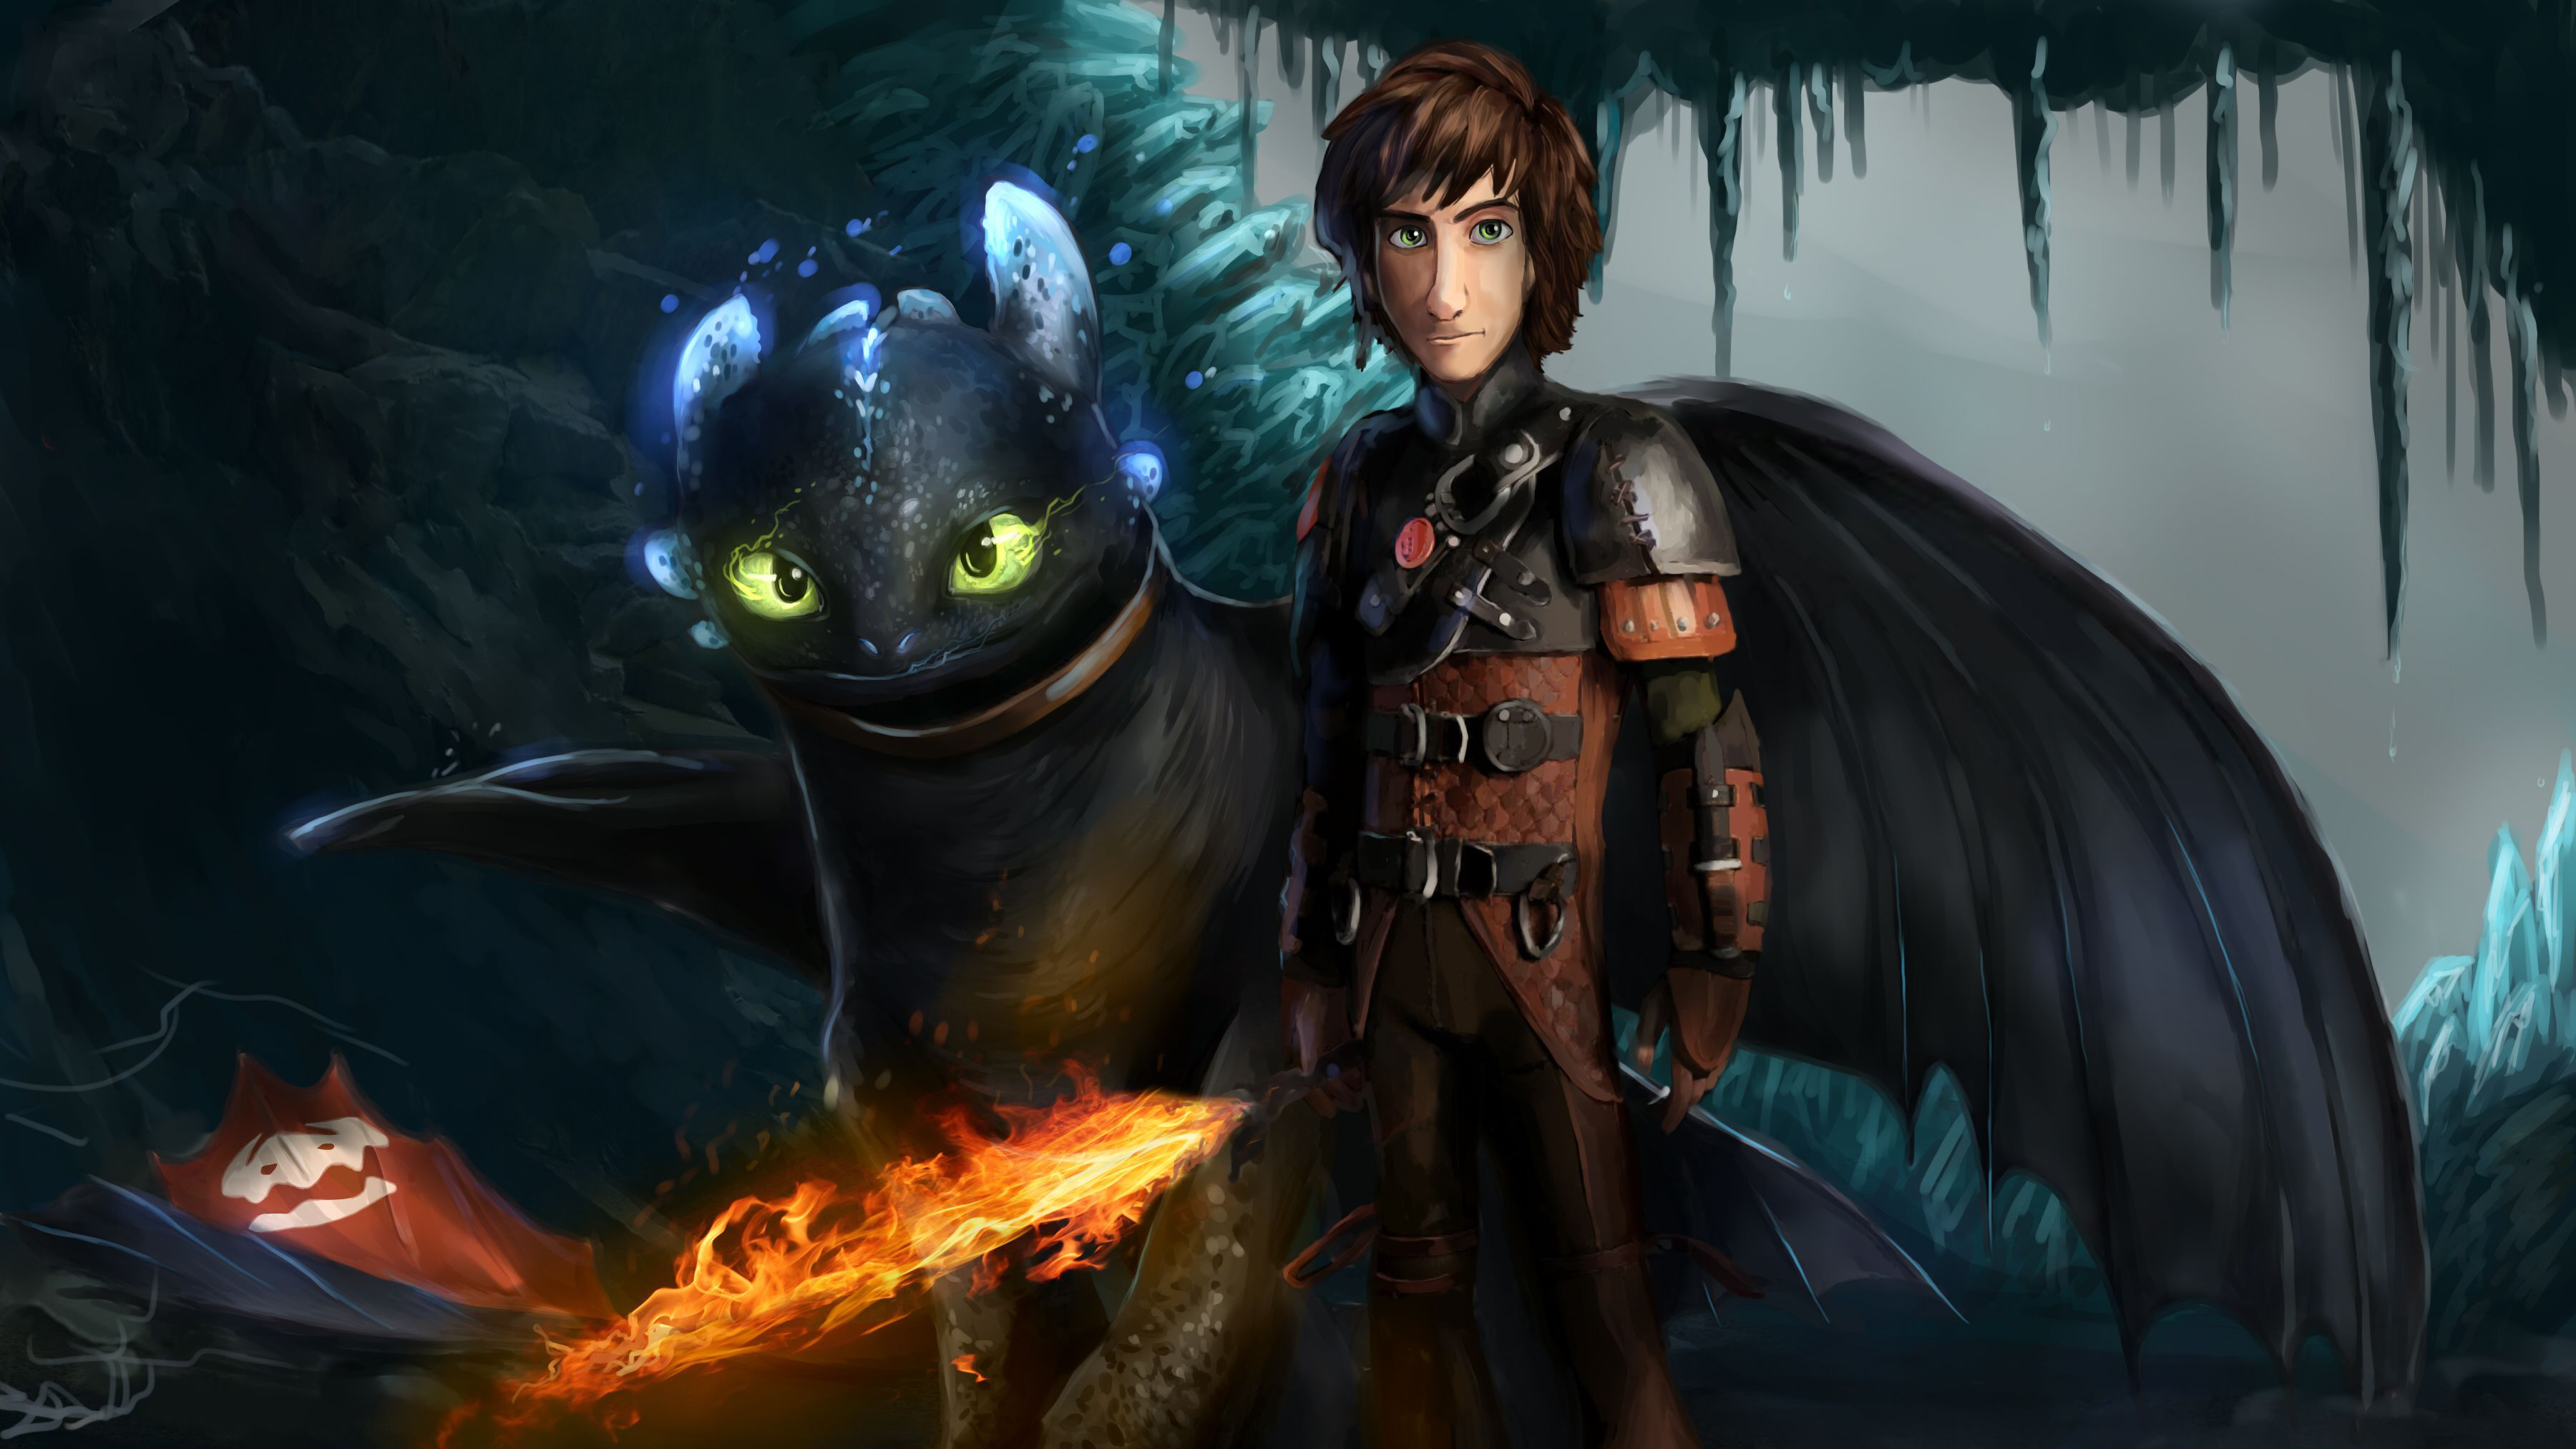 How To Train Your Dragon The Hidden World Art Hd Movies 4k